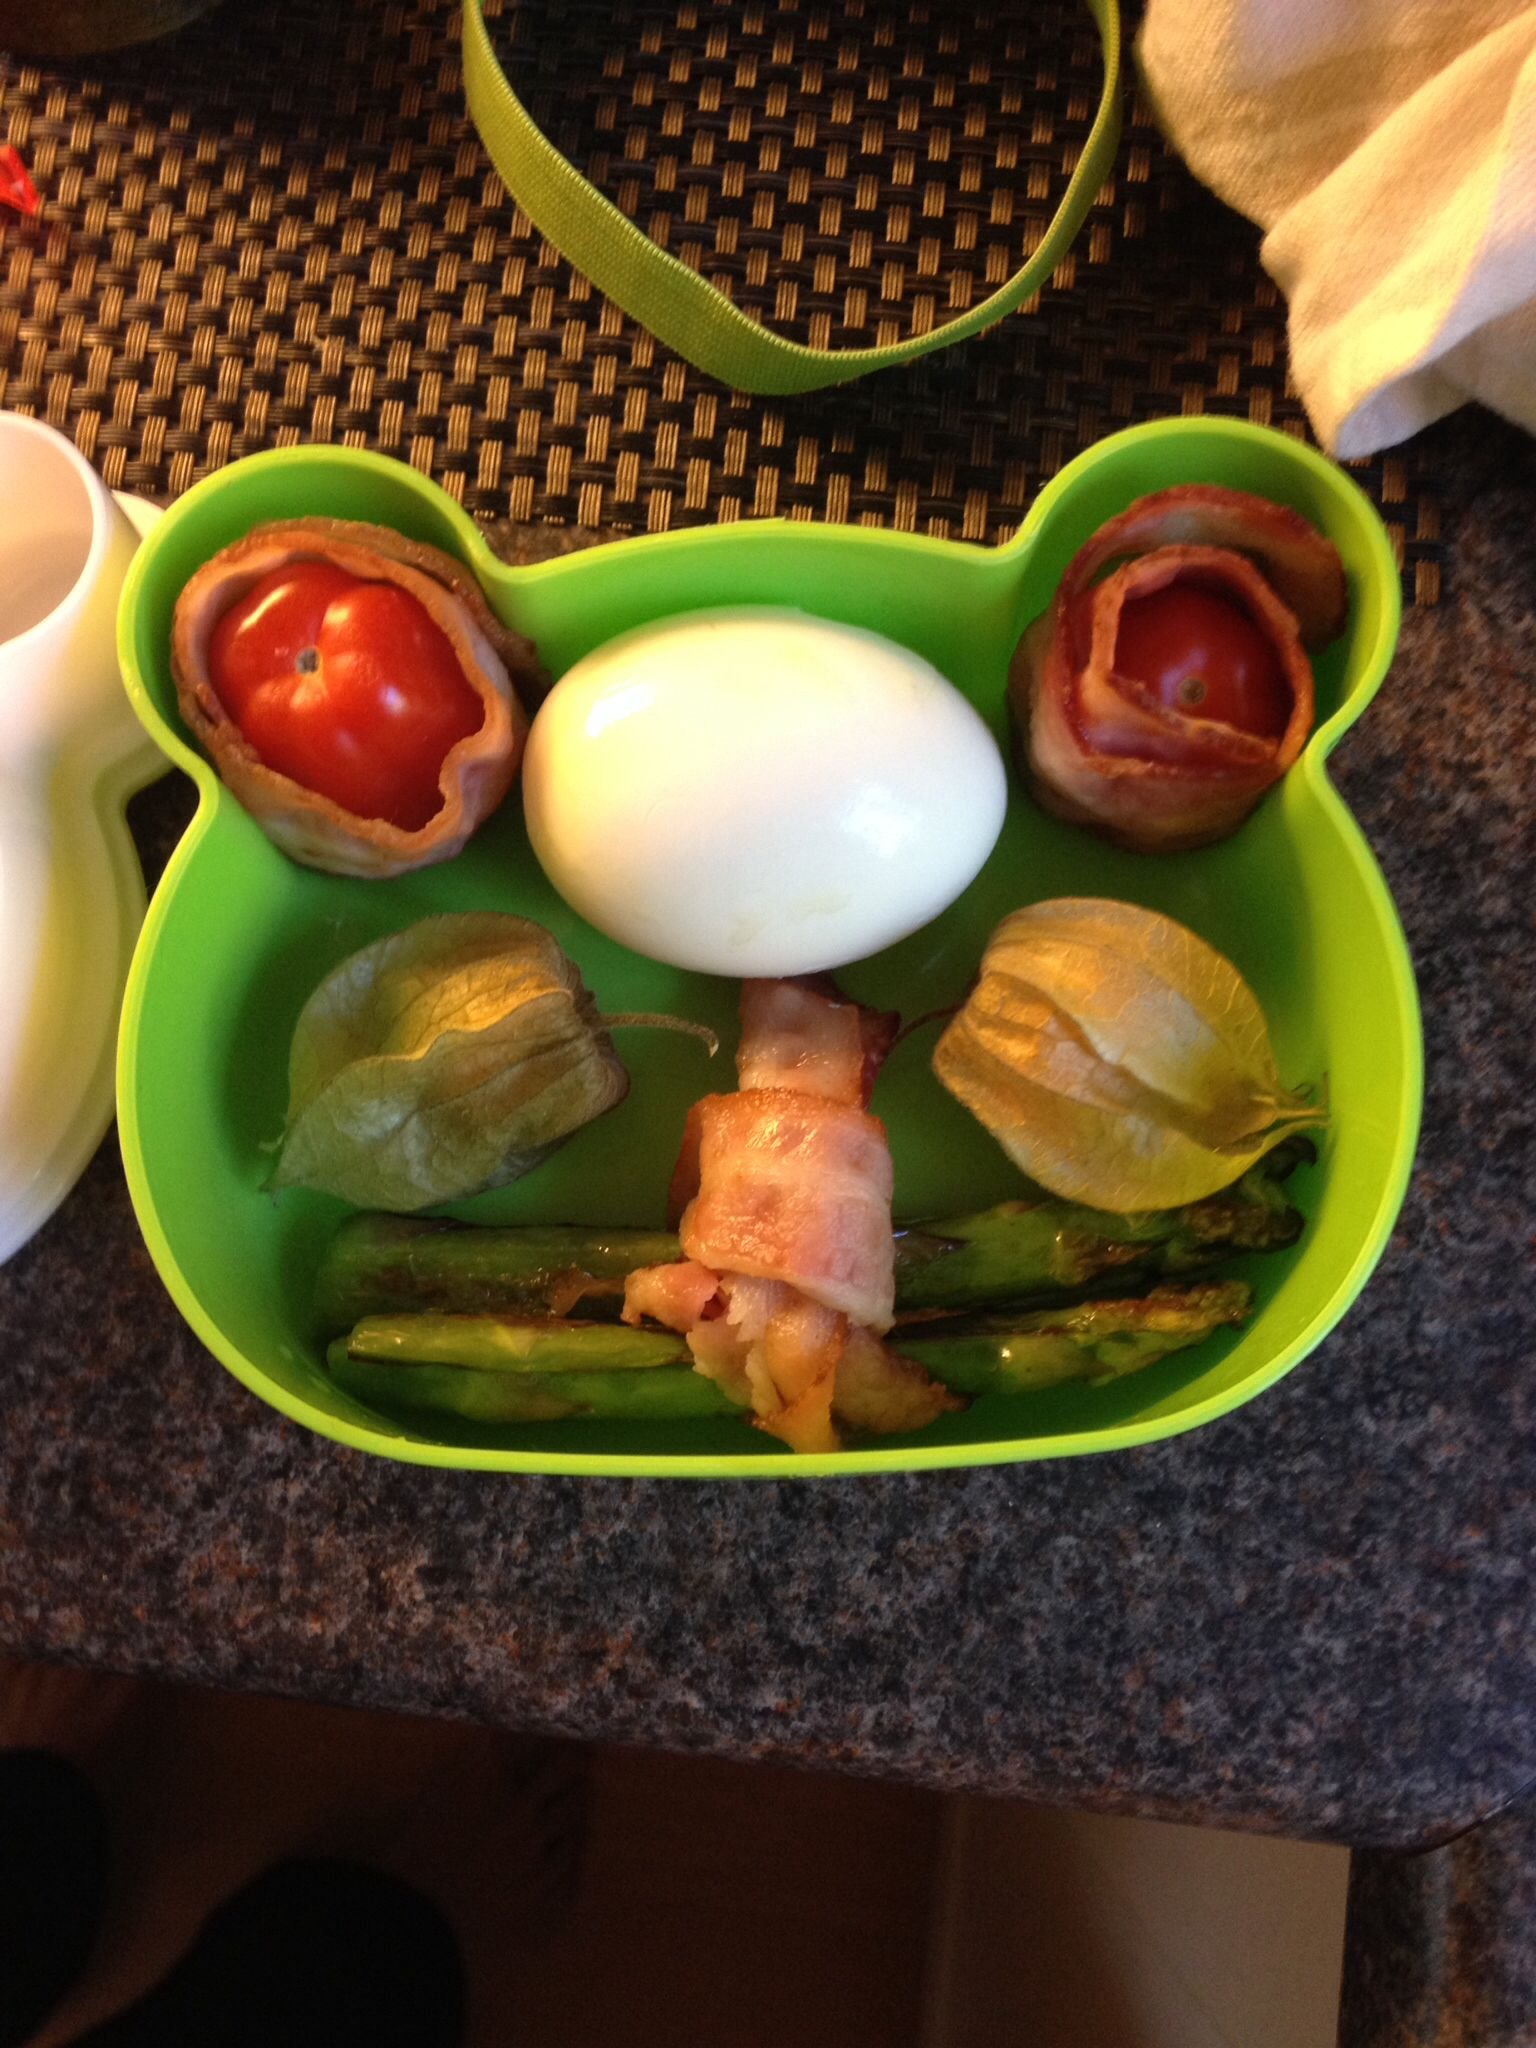 I made my cind of bento lunch today